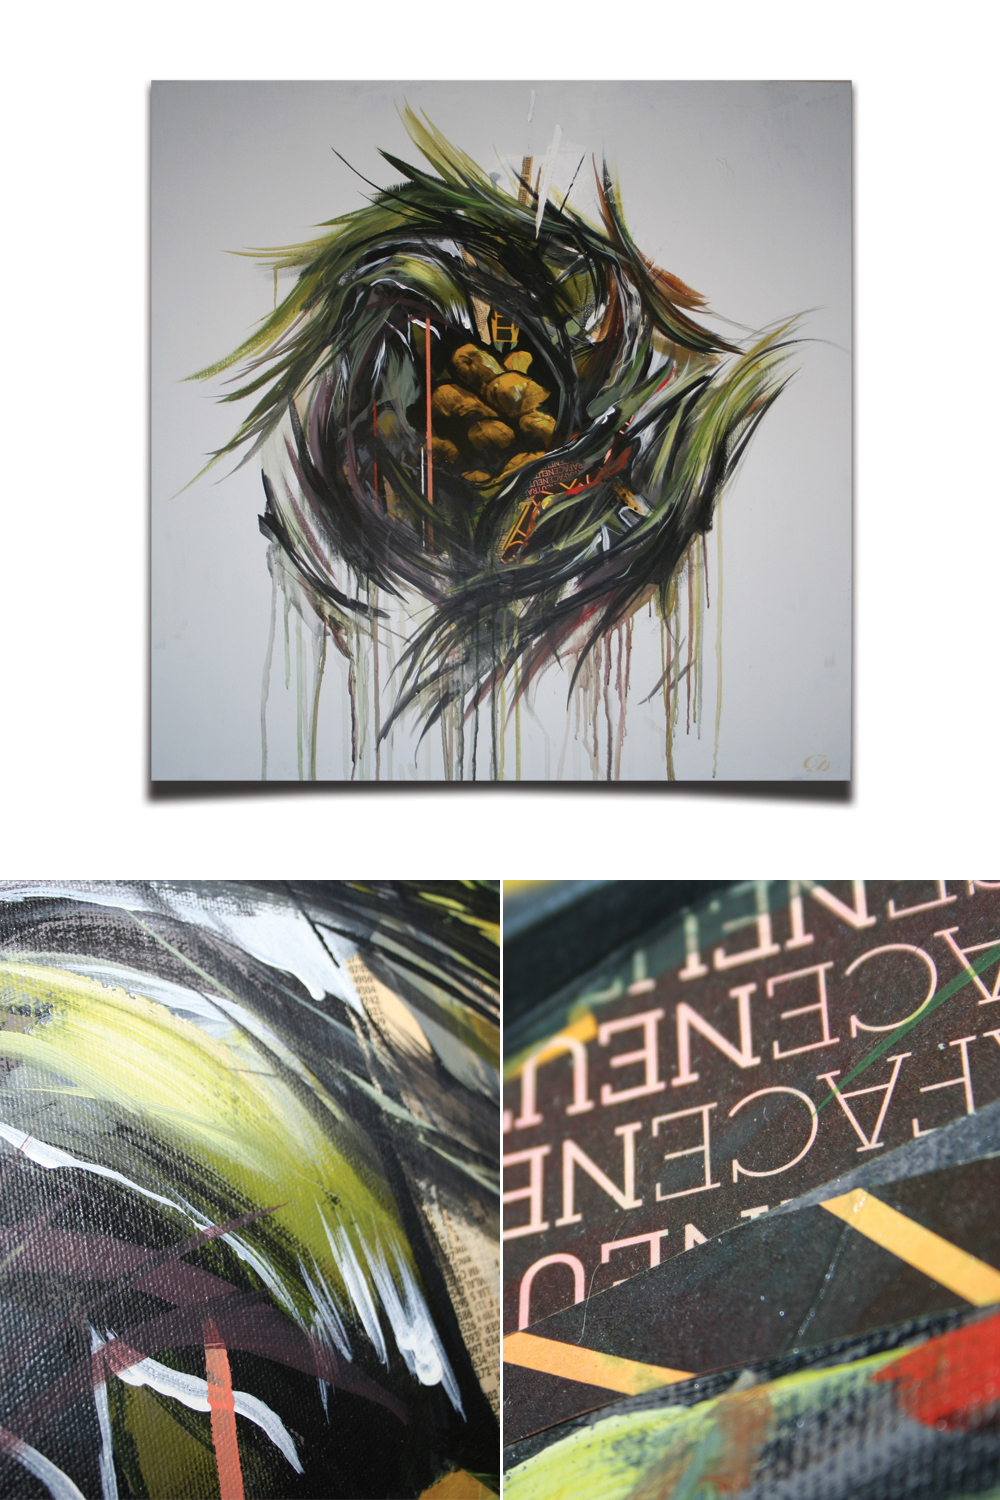 Nest by Dominic Damien. Mixed media on canvas.